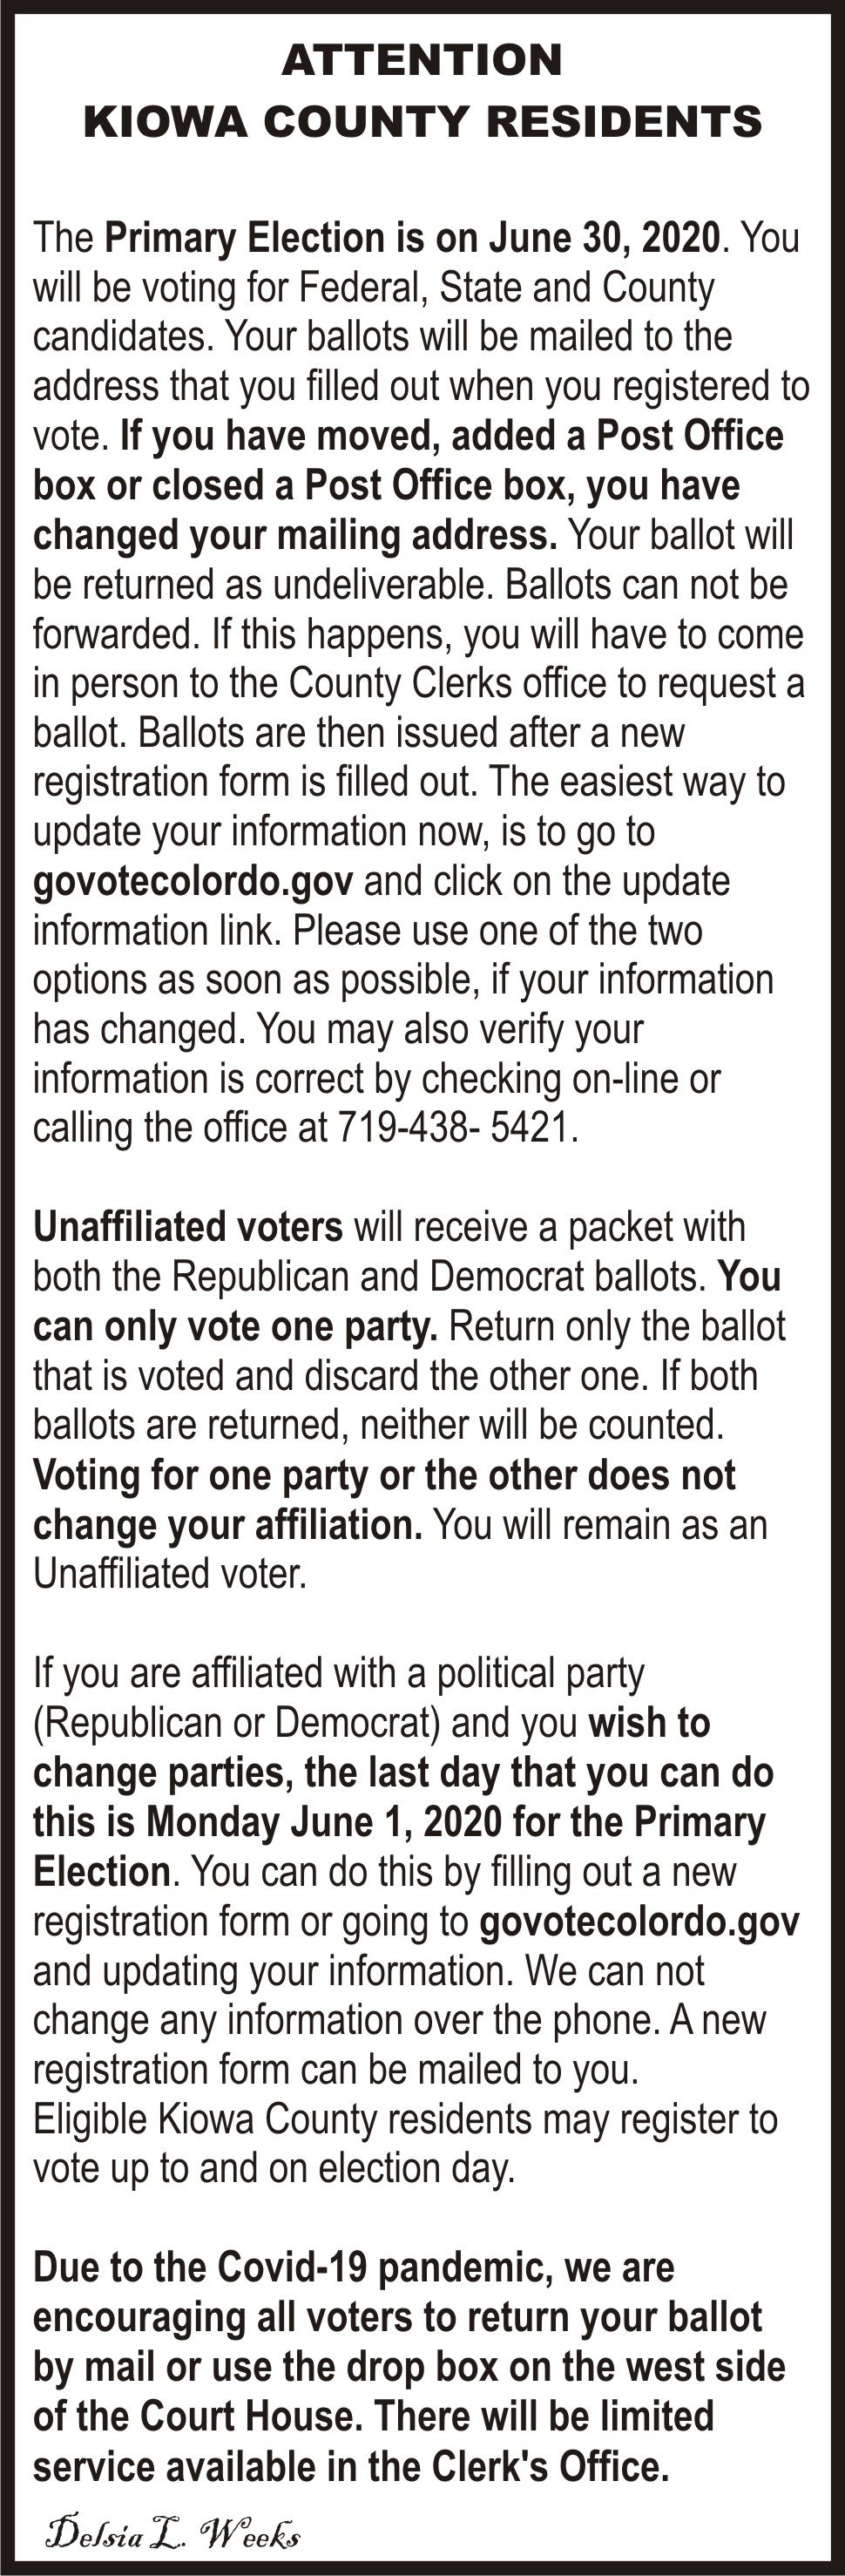 AD 2020-05 Election - Attention Kiowa County Residents